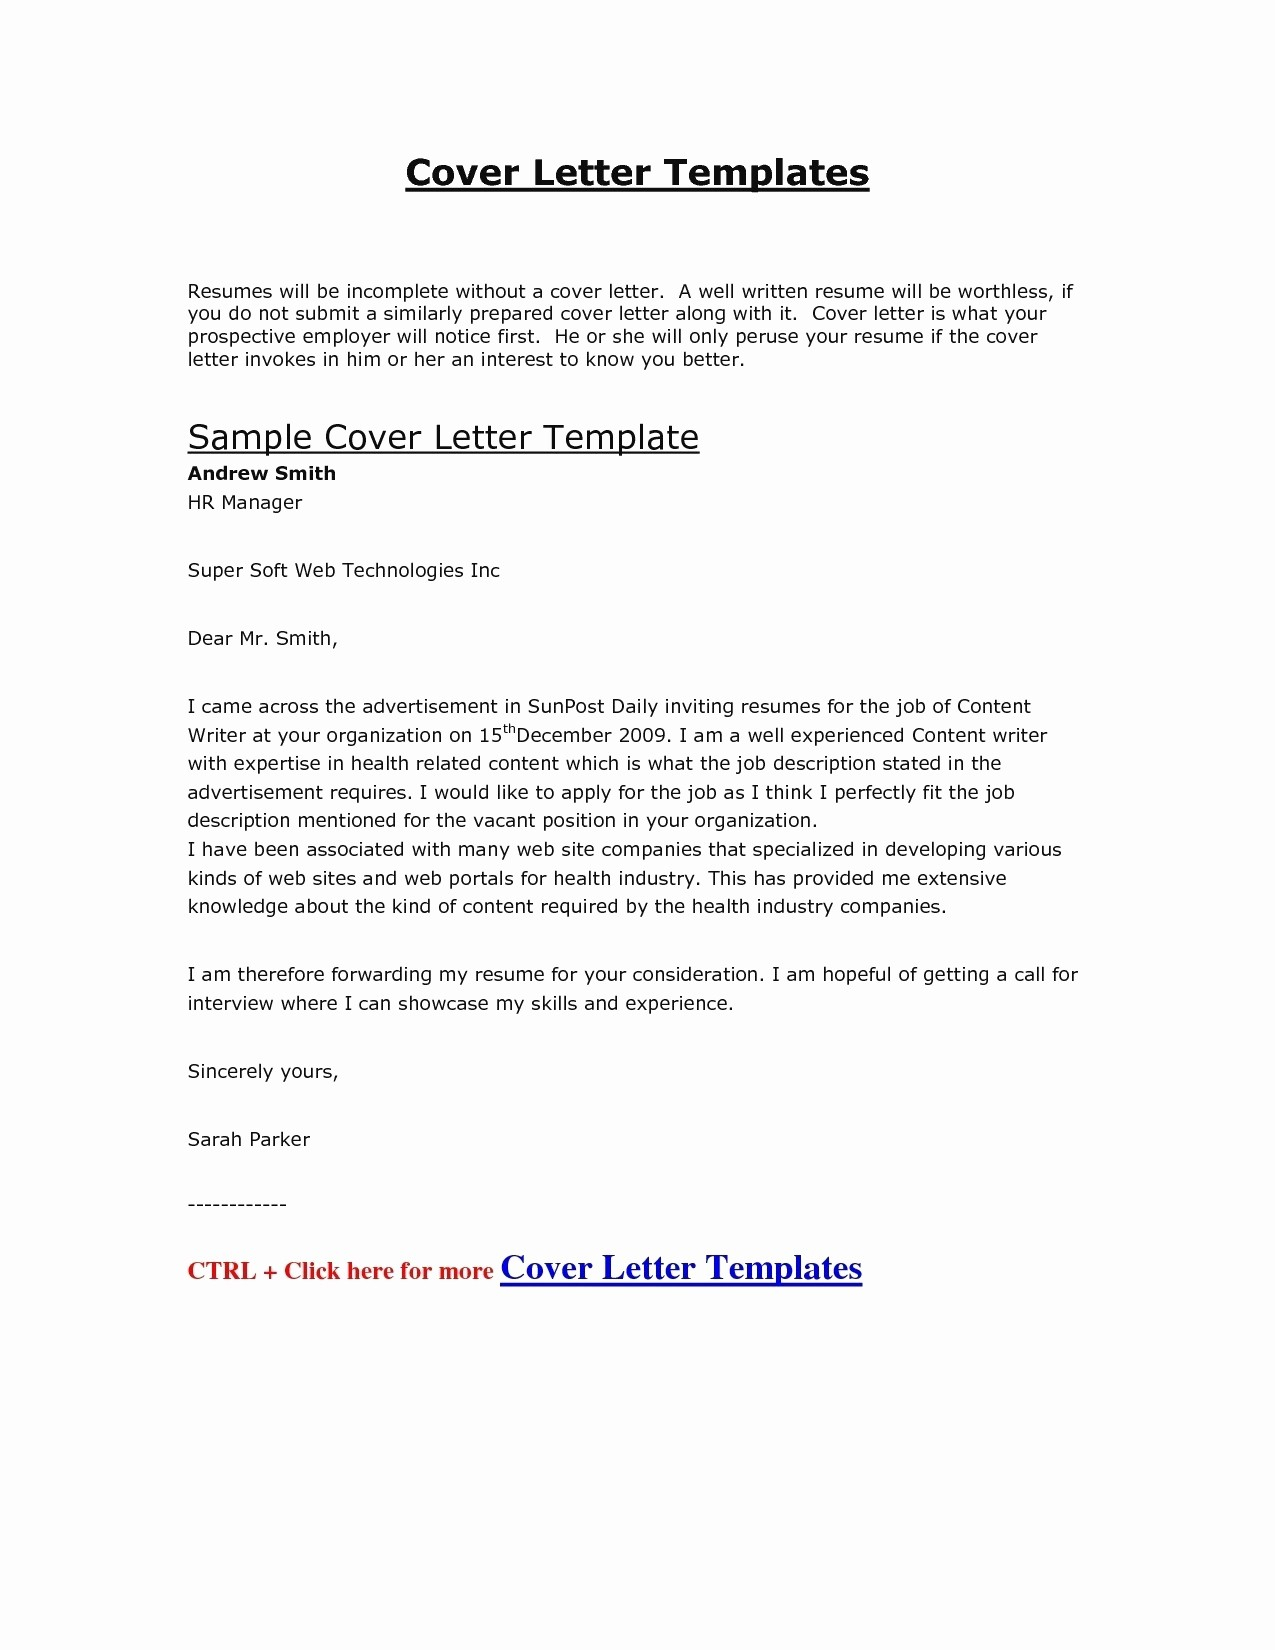 proper cover letter template collection letter cover templates